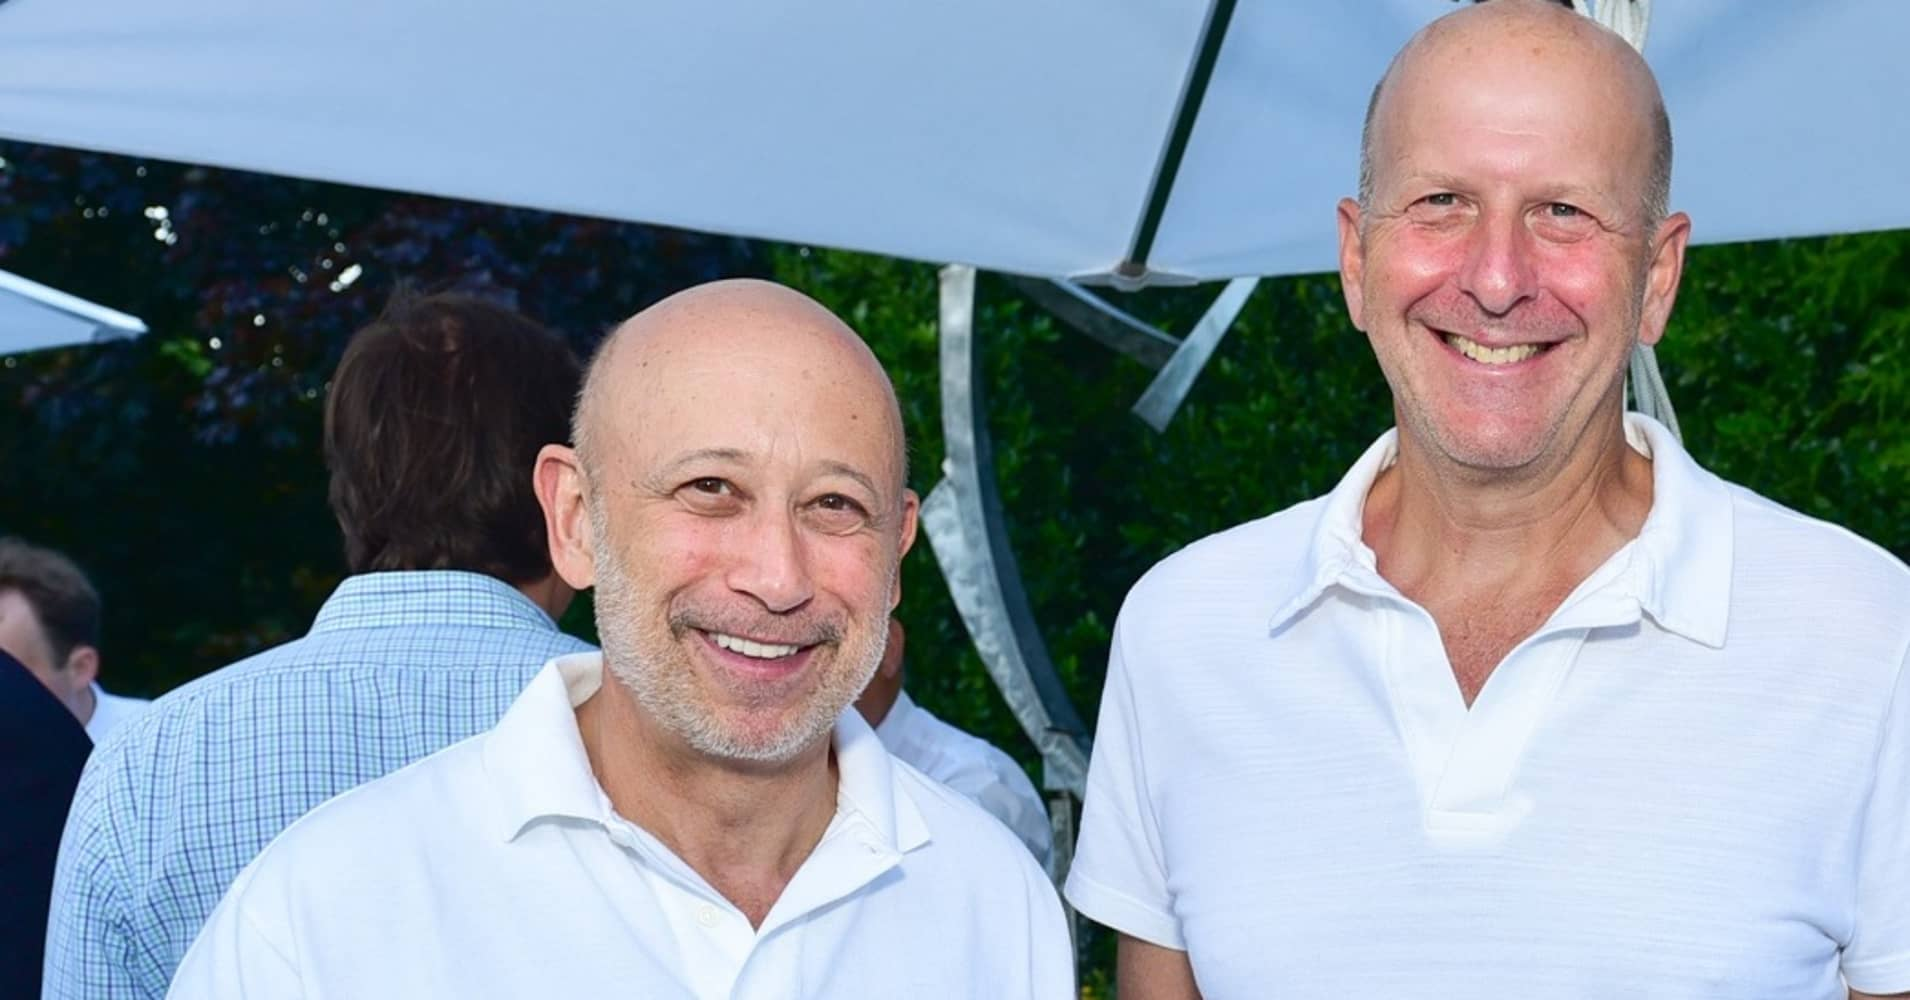 (L-R) Lloyd Blankfein and David Solomon attend NYSCF Annual Summer Cocktail Reception at Private Residence on July 15, 2016 in Sagaponack, NY.